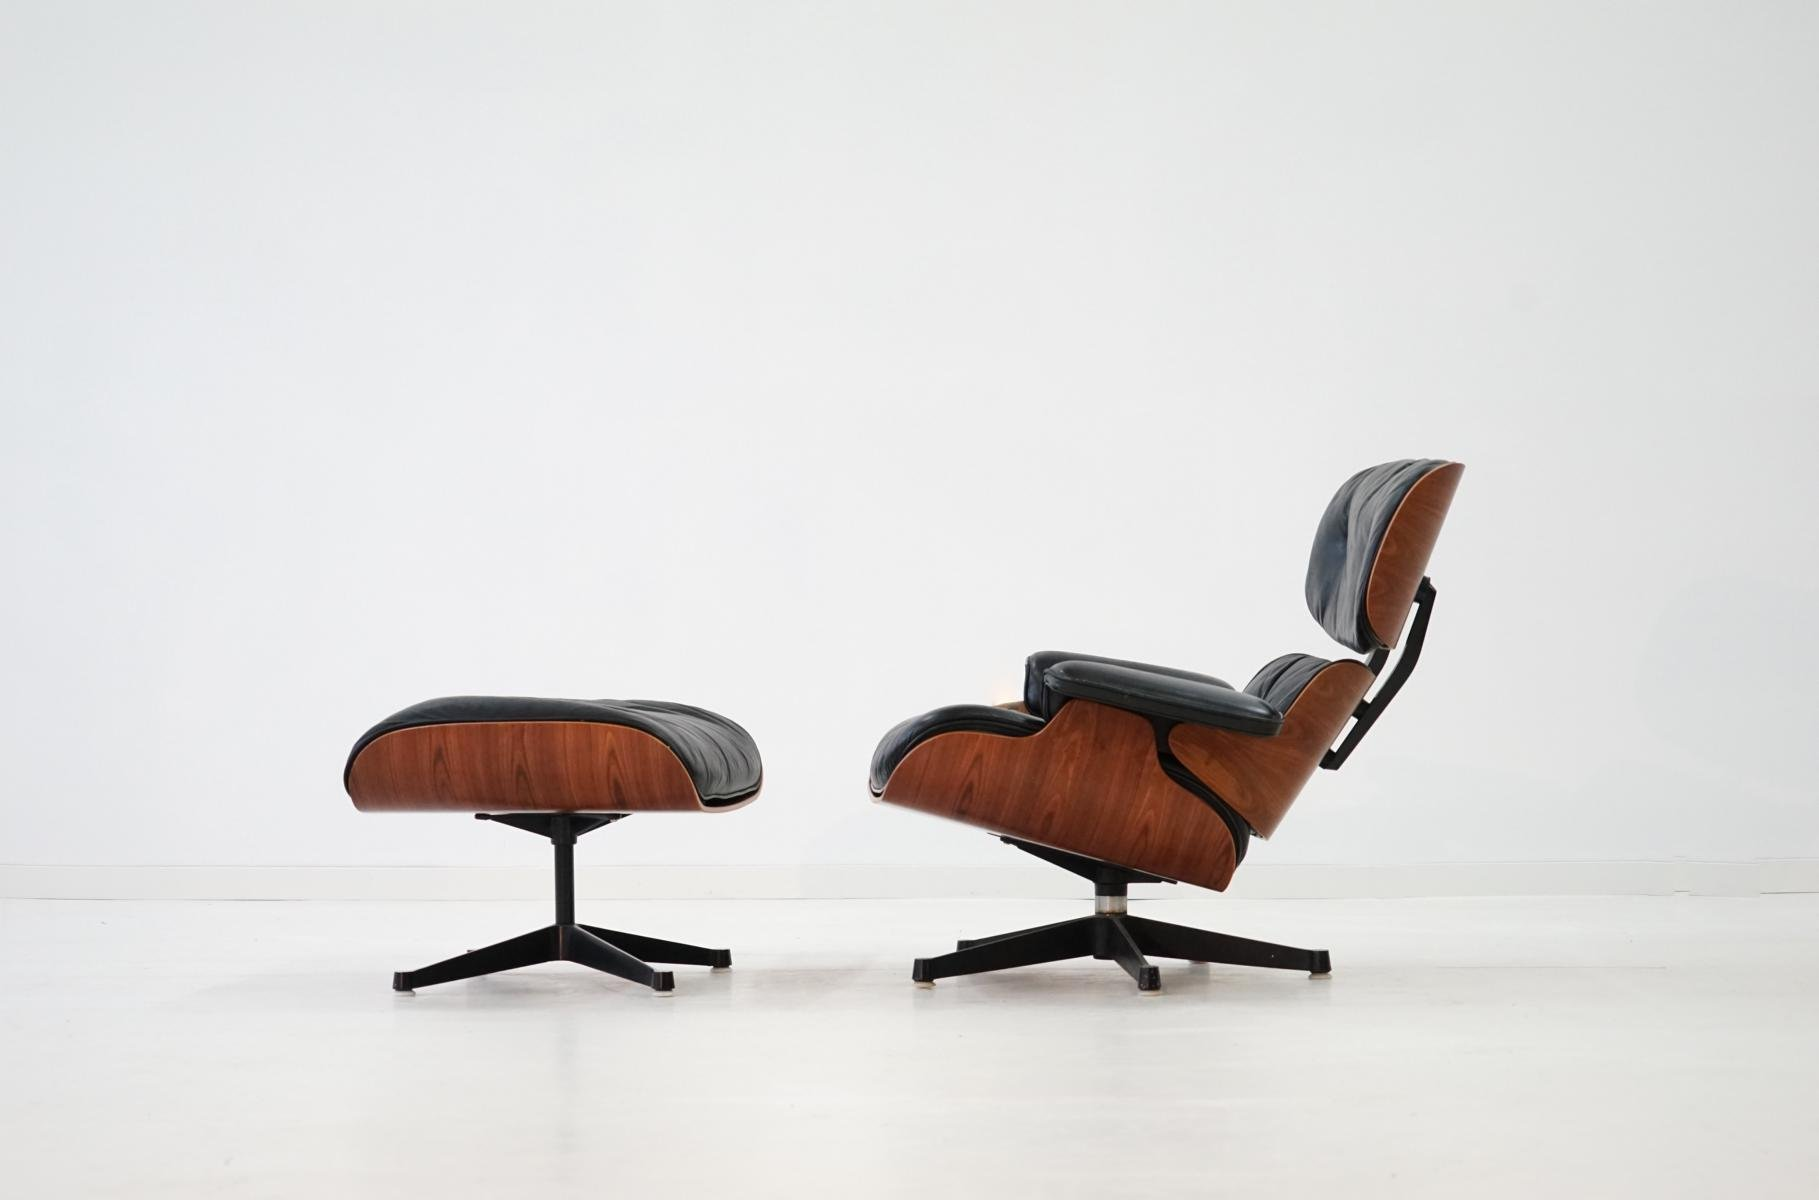 Vintage Rosewood Lounge Chair & Ottoman by Charles & Ray Eames for